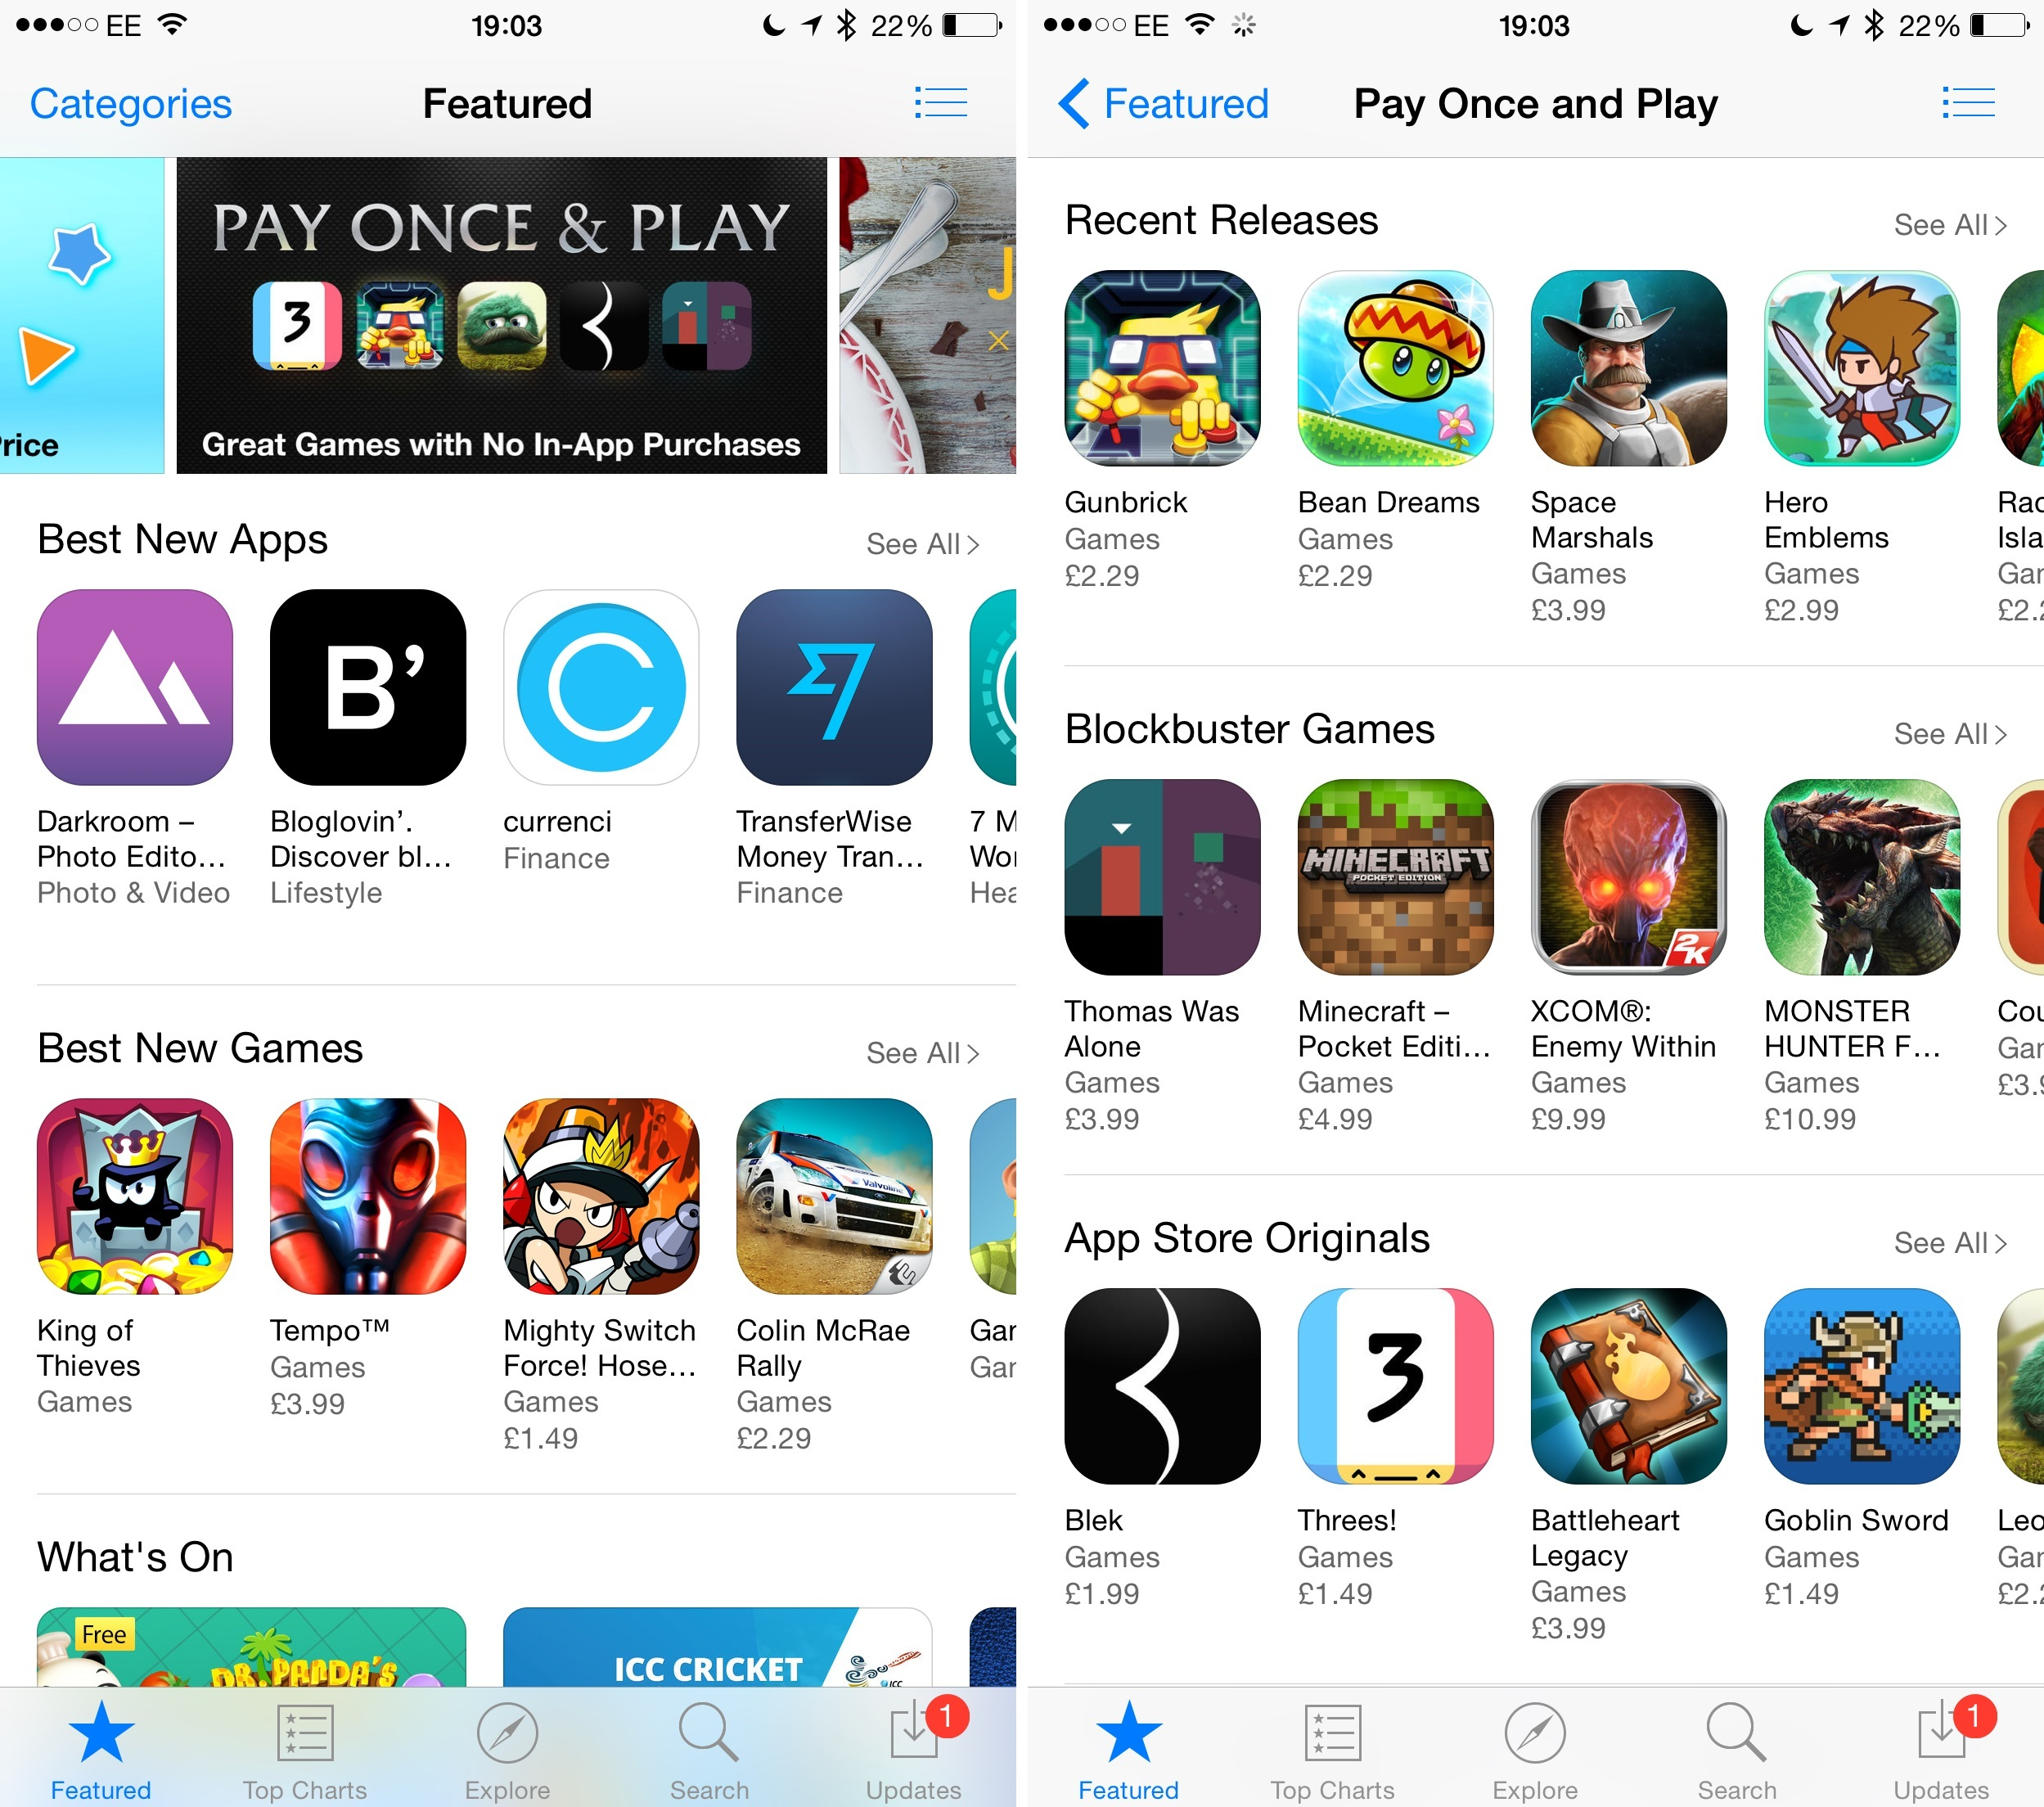 Apple Adds New Pay Once And Play Category To The App